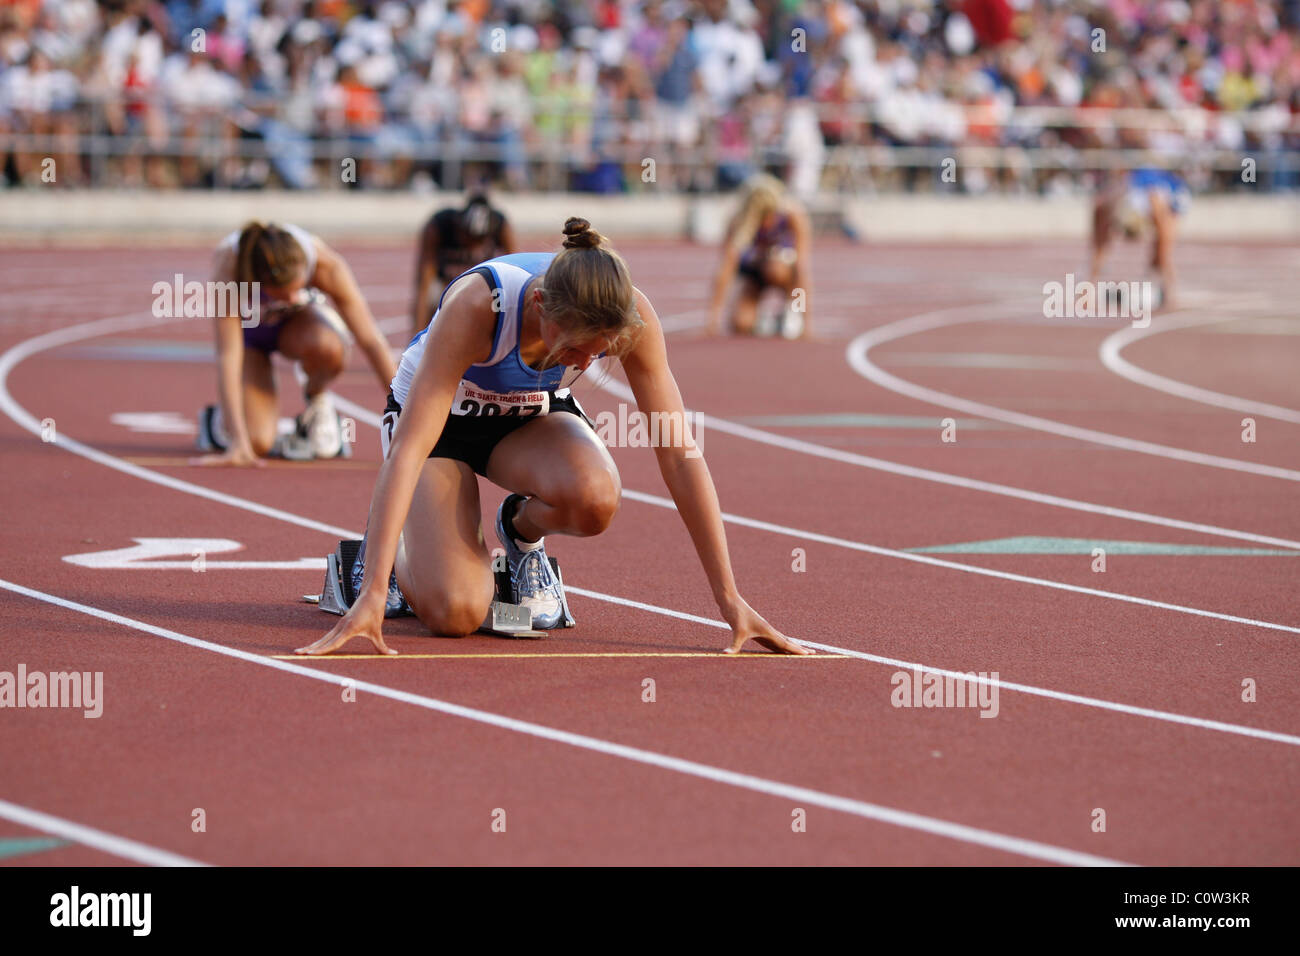 anglo girls in the blocks at the starting line of their race at the